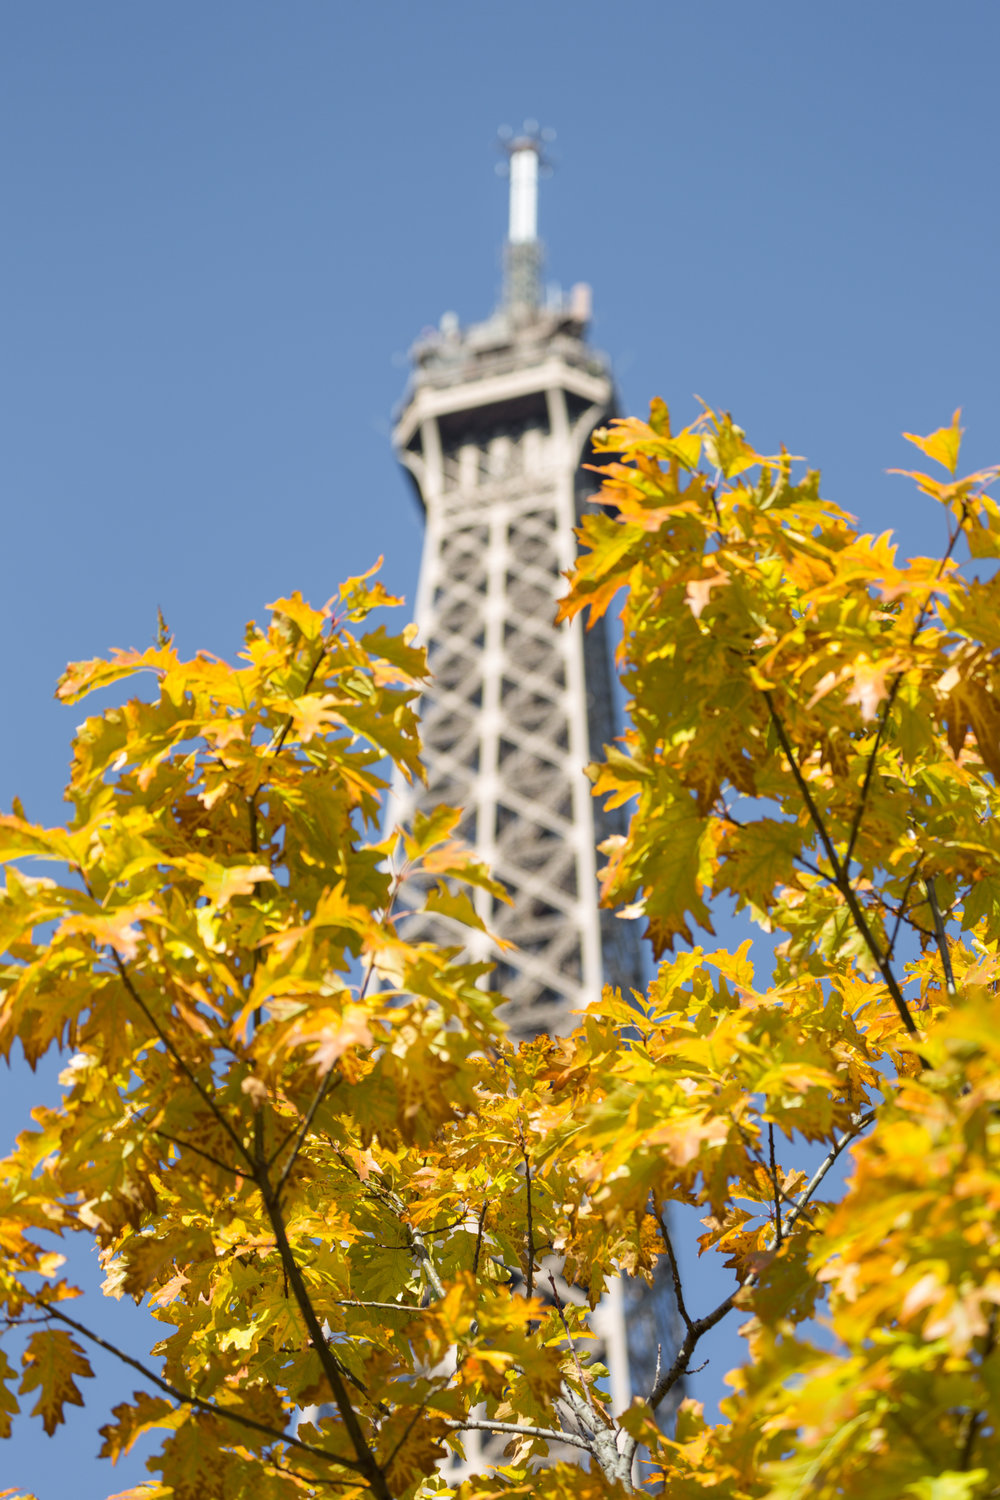 There is fall foliage to be seen in the parks and gardens which have a view of the Grande Dame de Paris, the Eiffel Tower..